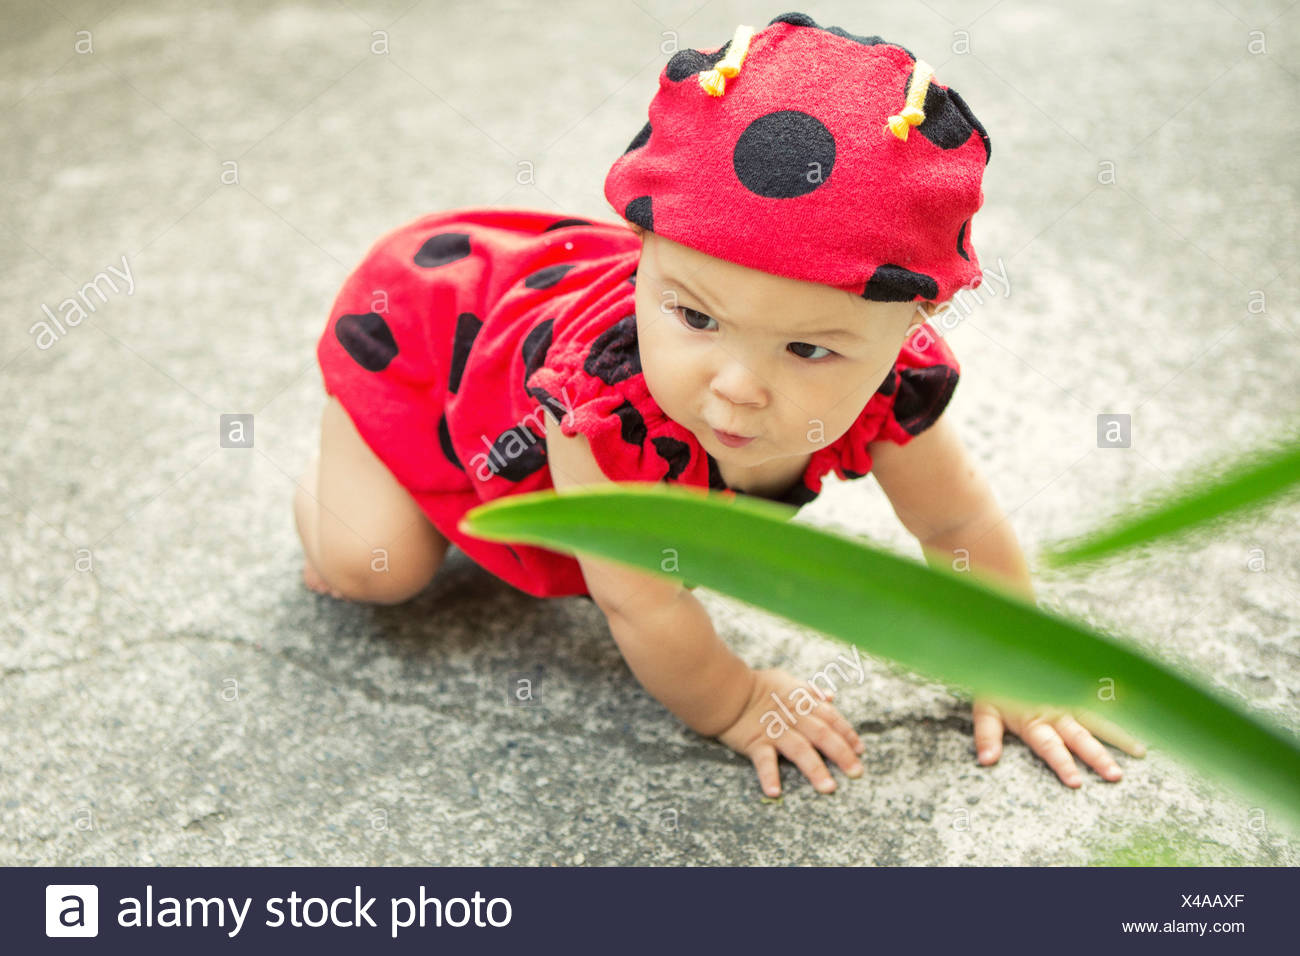 Baby girl wearing ladybird outfit - Stock Image